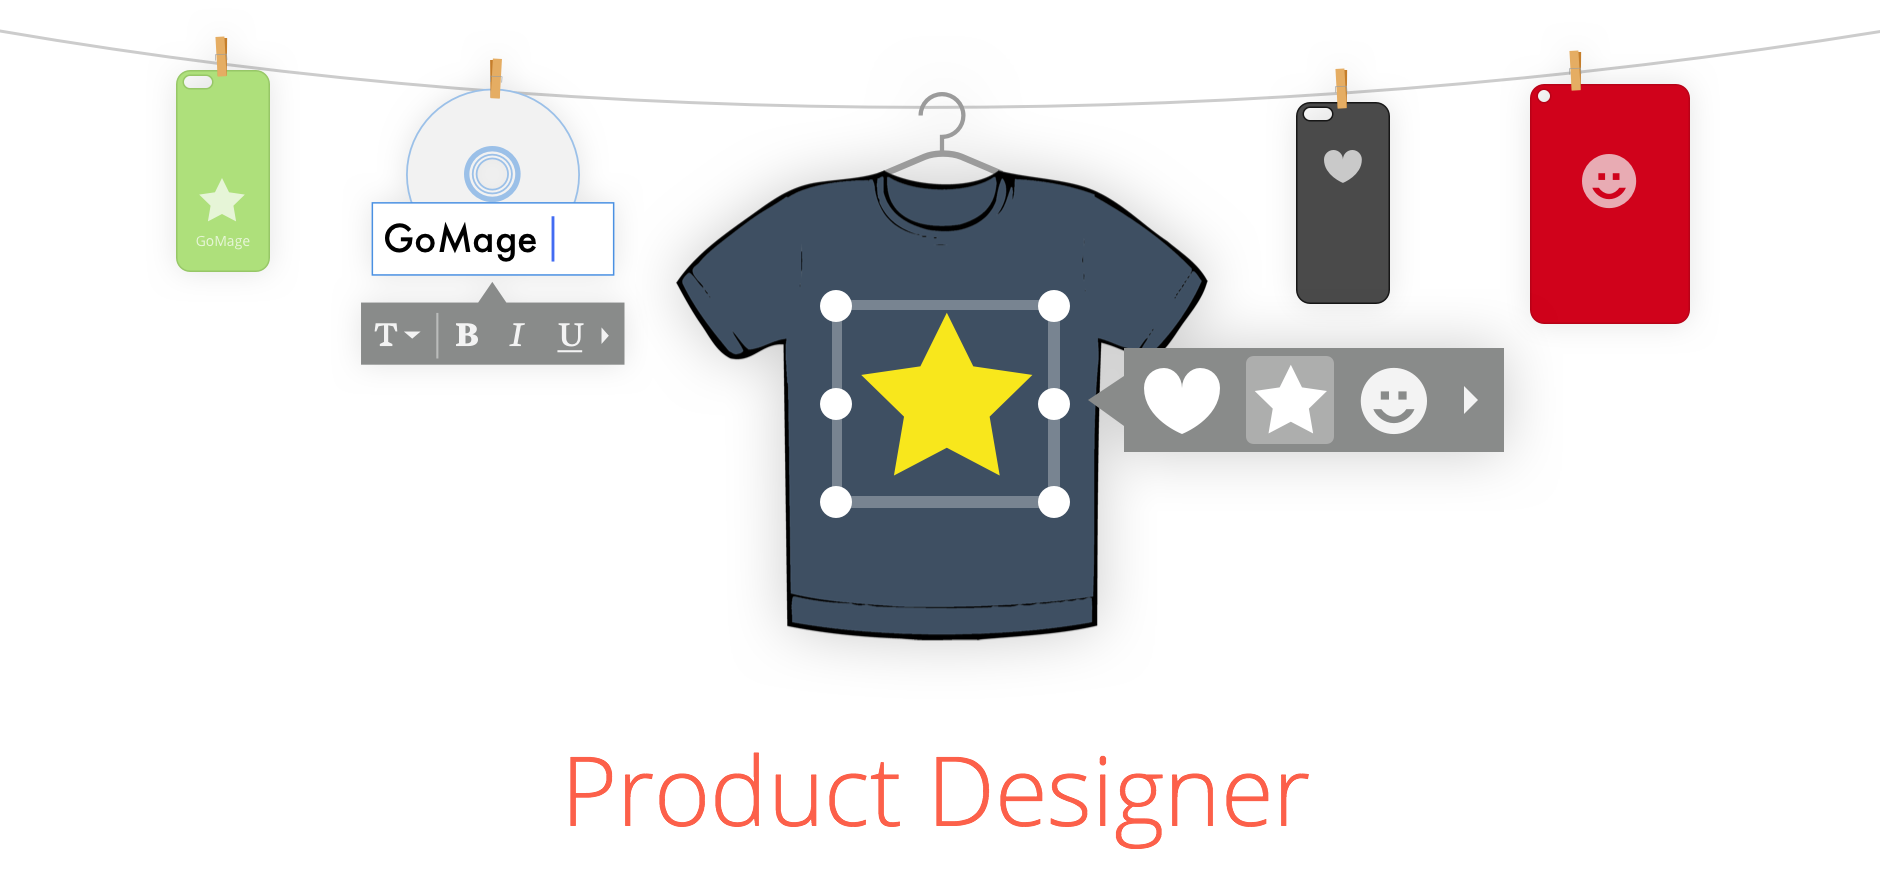 GoMage Product Designer